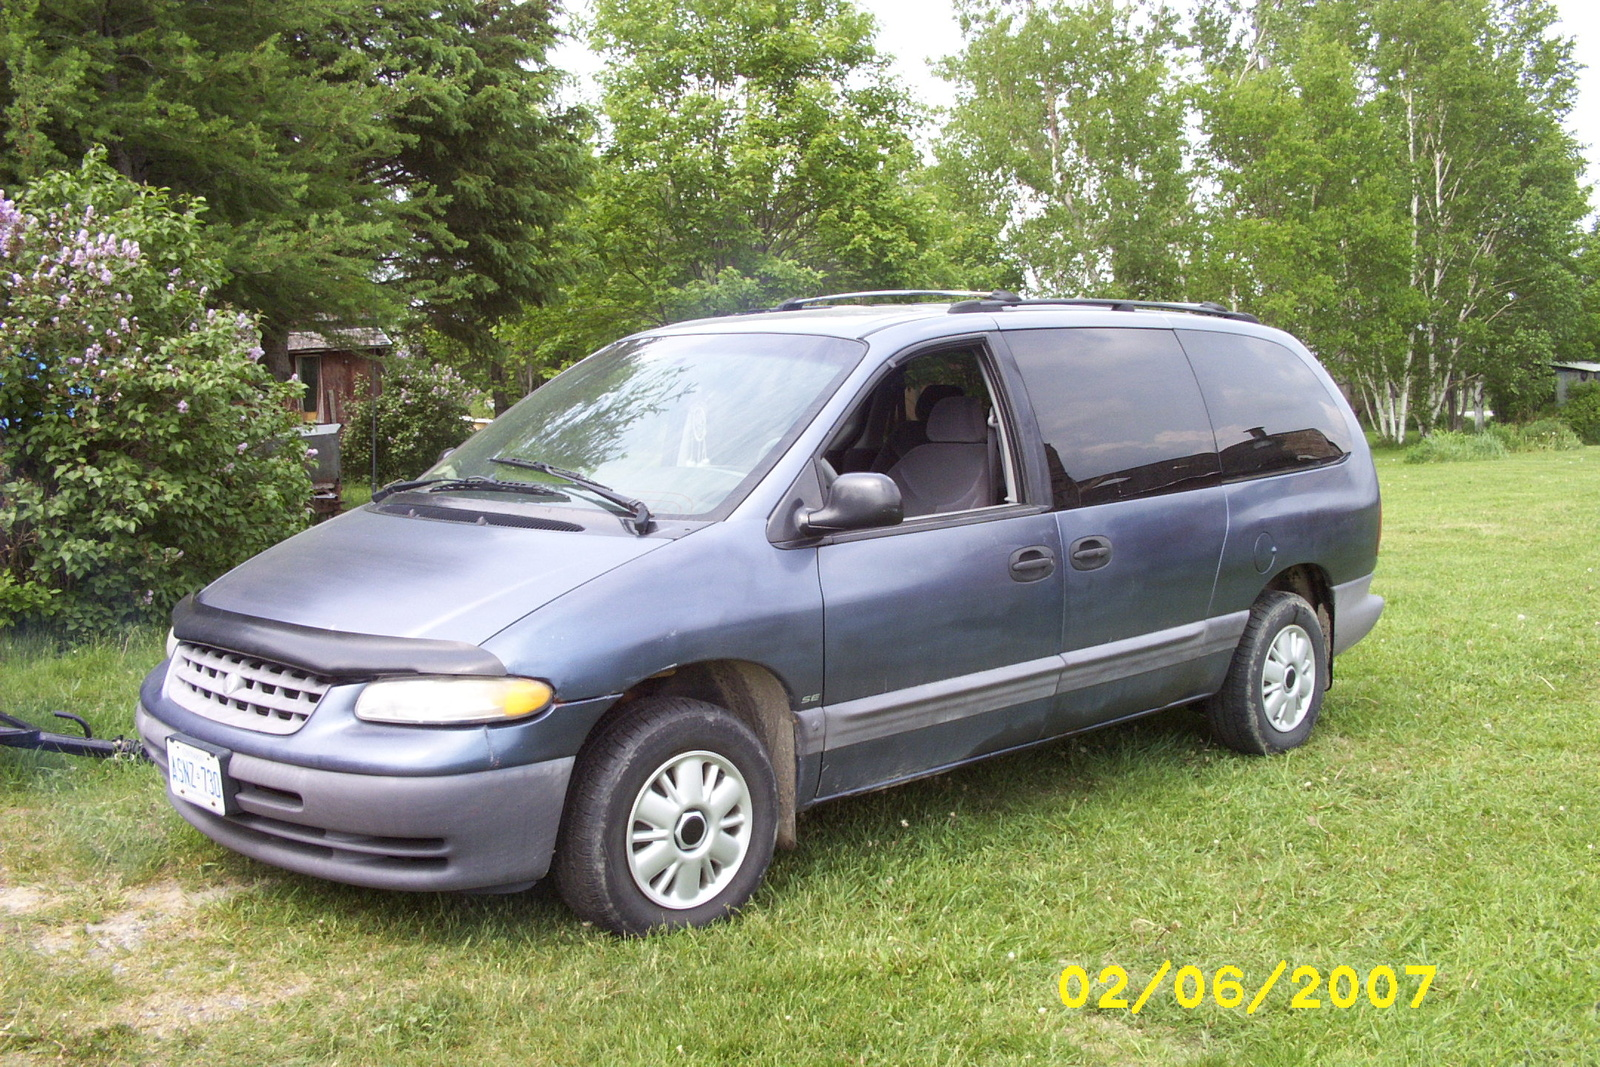 Cars plymouth grand voyager #4